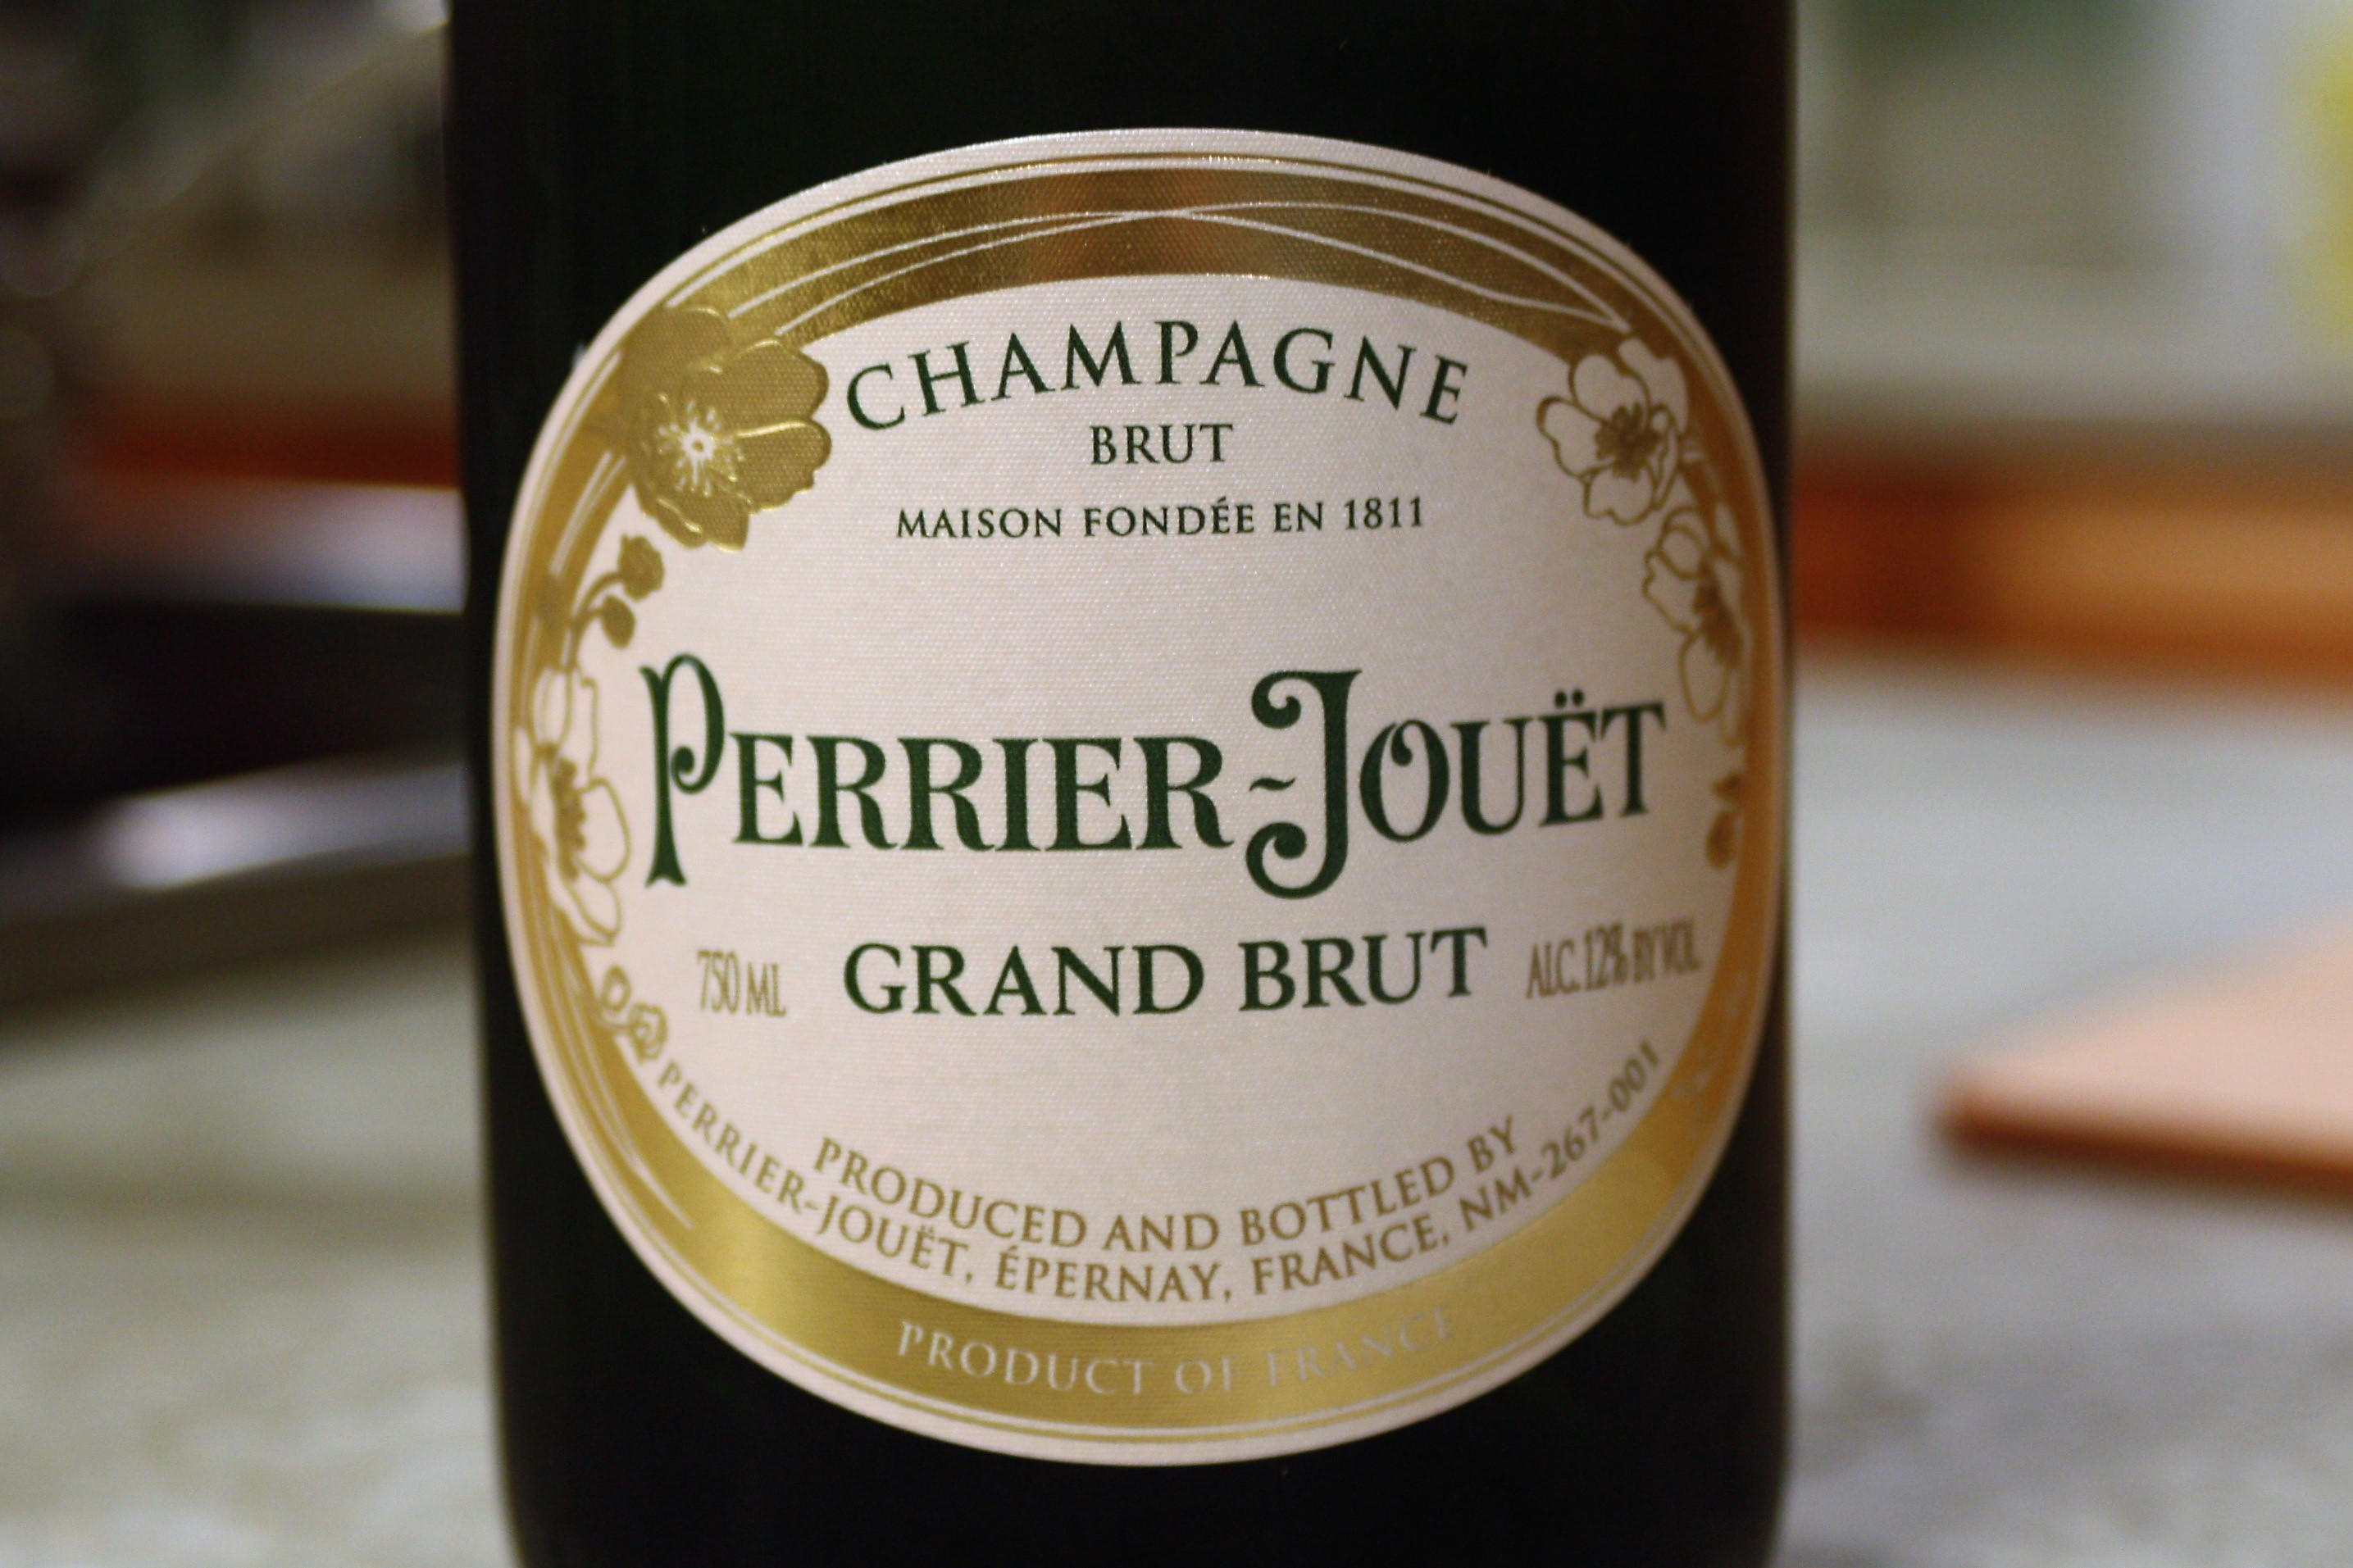 Perrier-Jouët, Champagne Grand Brut (NV)